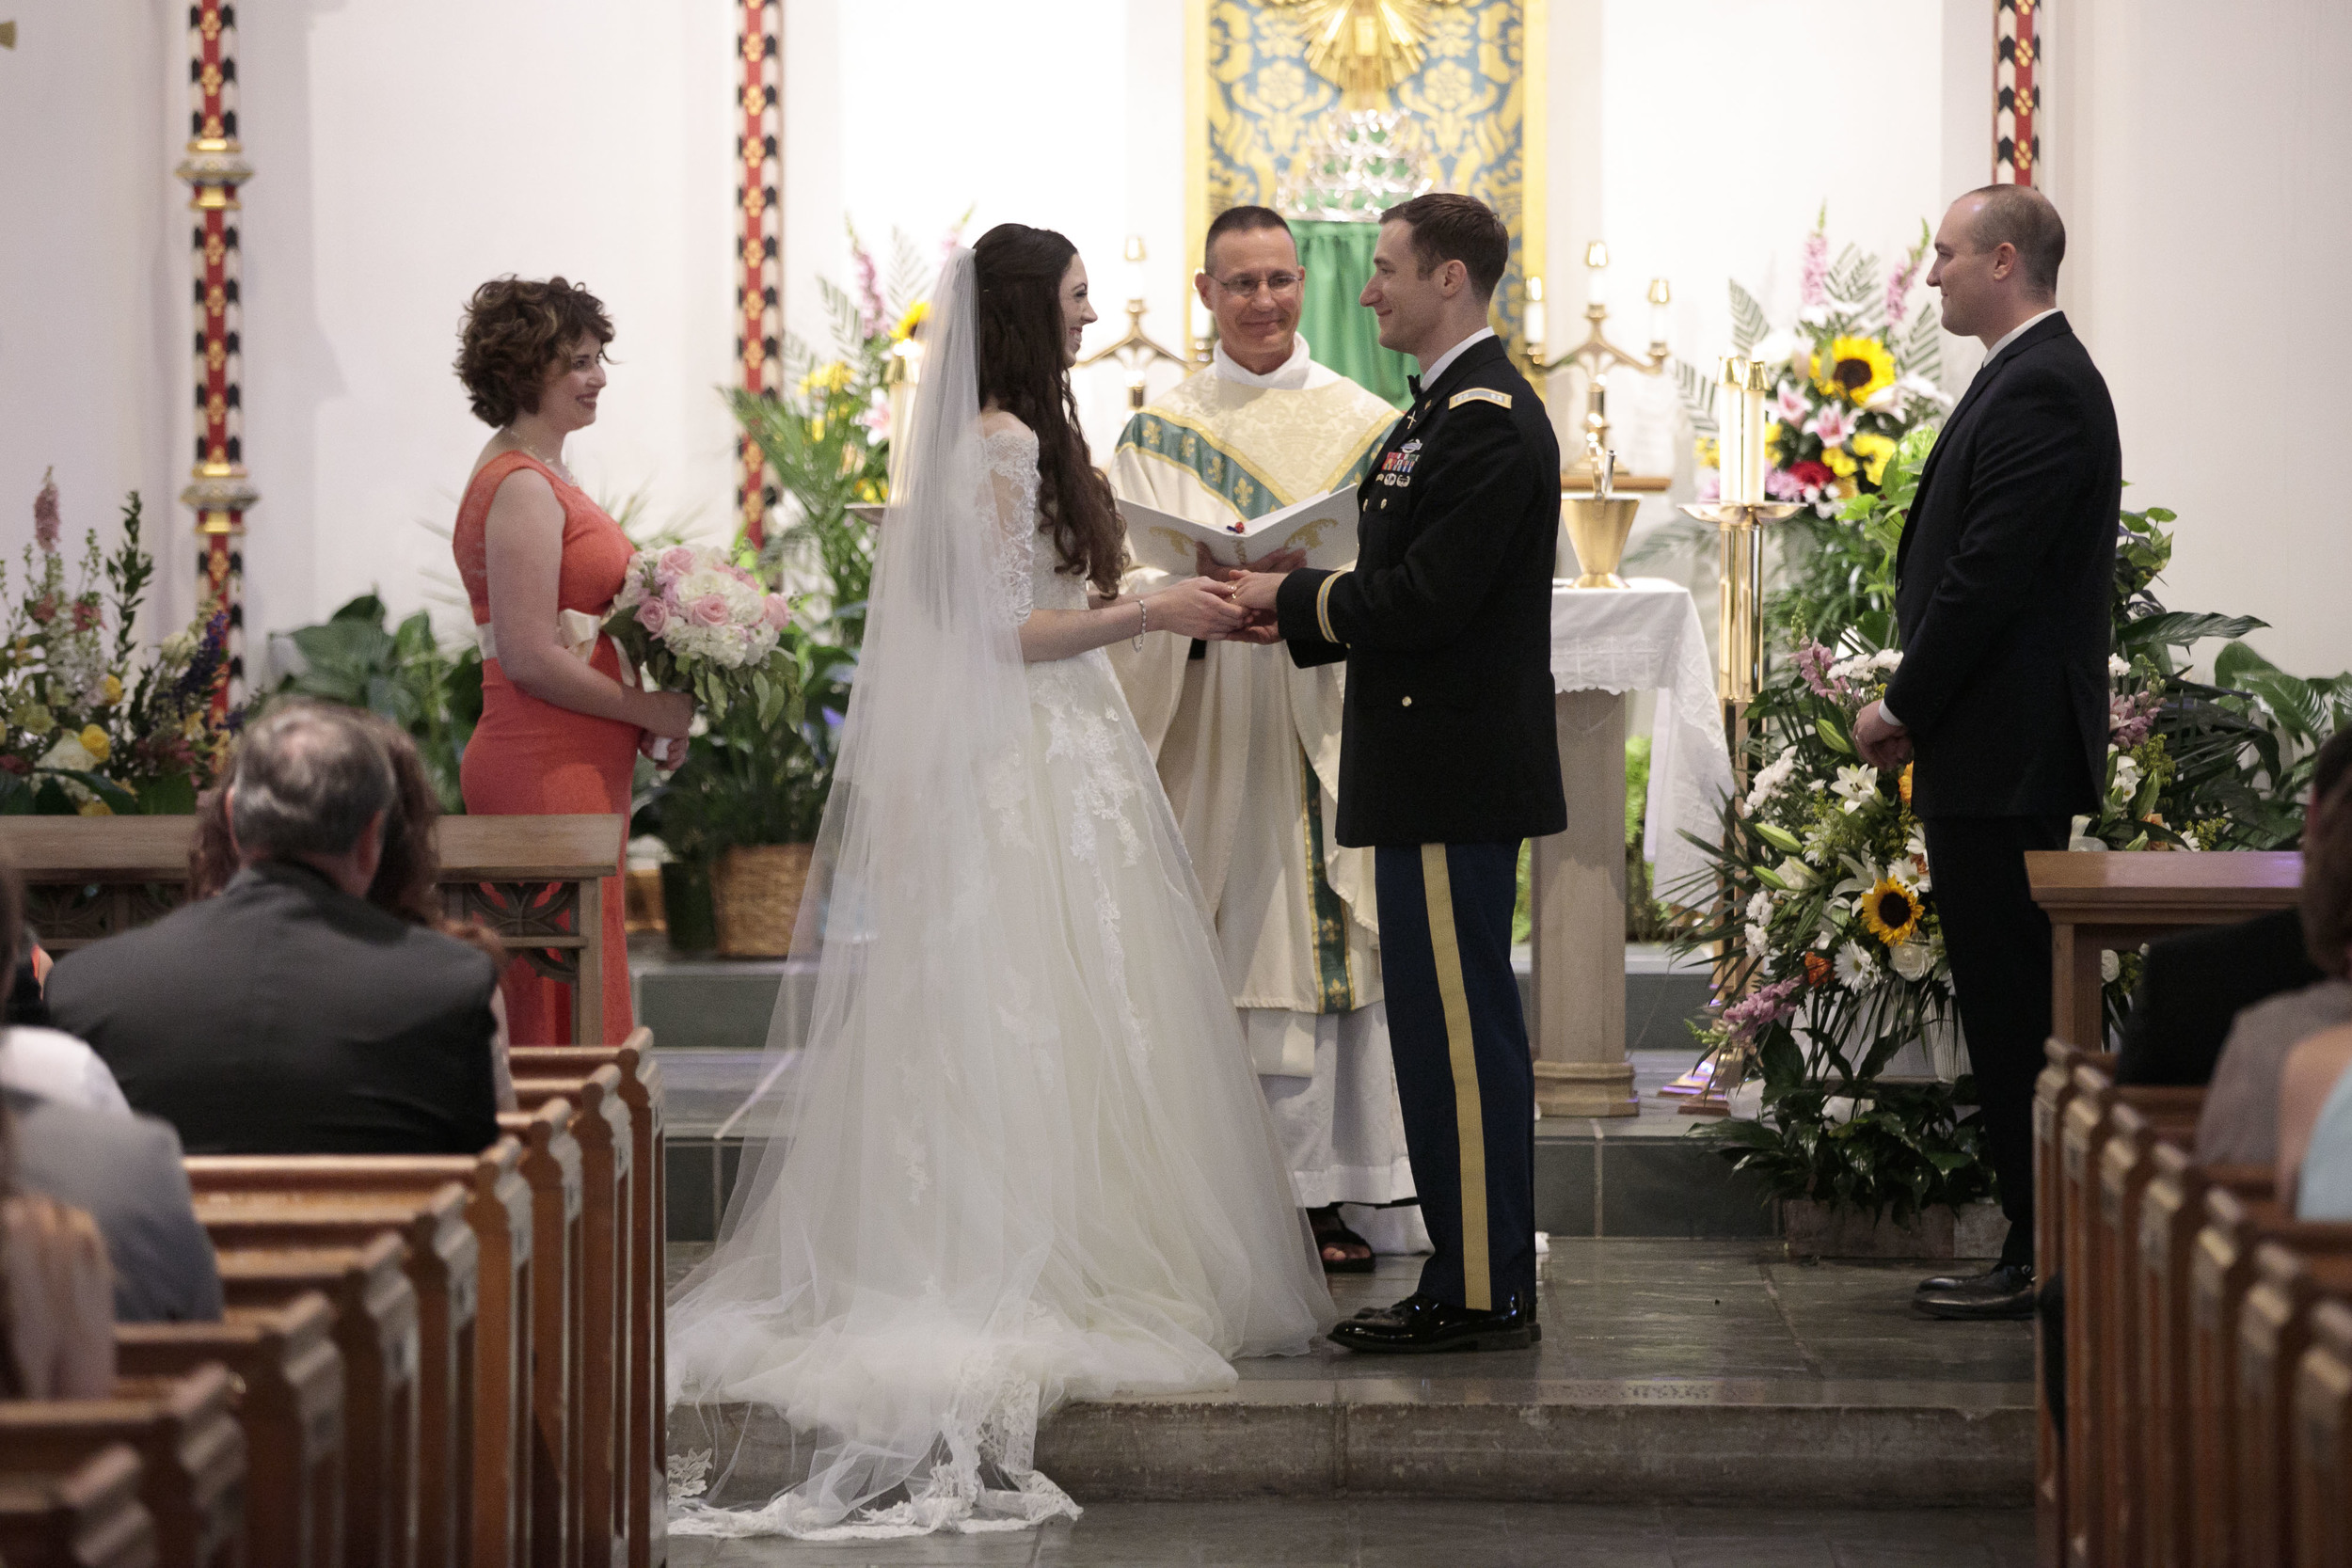 West_Point_Wedding_Photographer_NY_3023.JPG